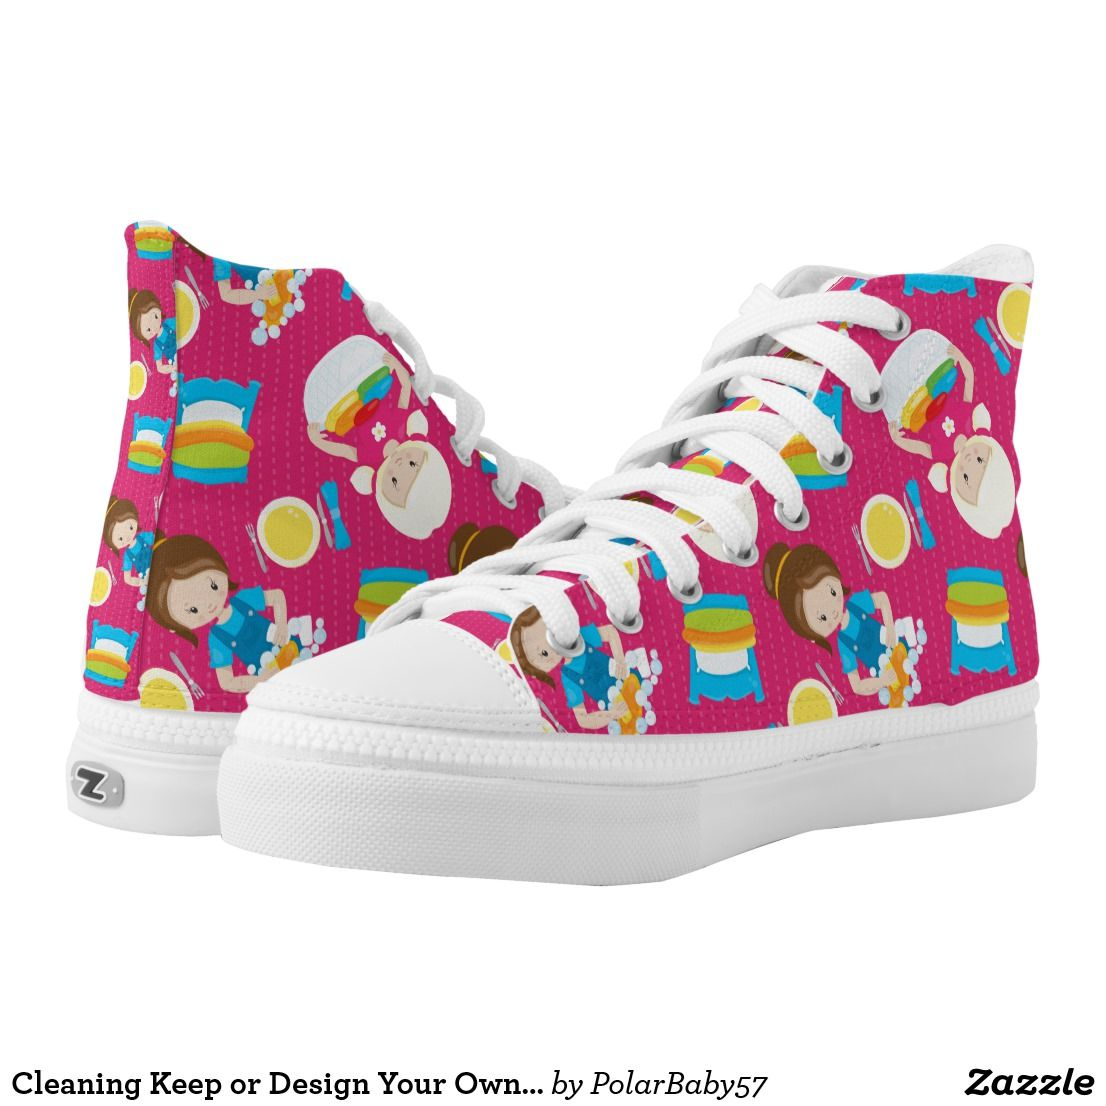 2db3873294de Cleaning Keep or Design Your Own High Top Shoes